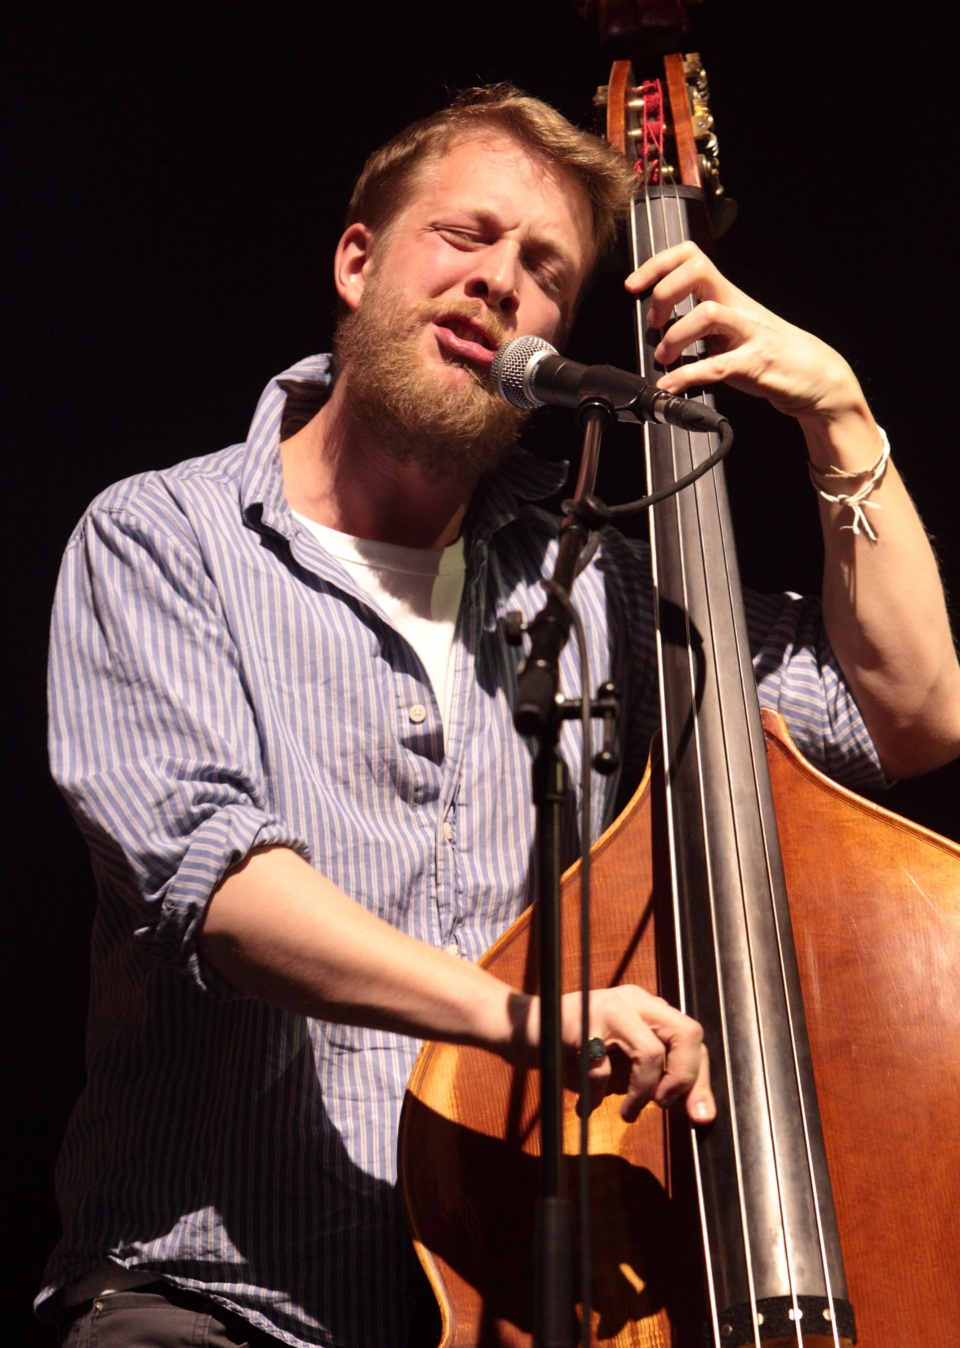 Ted Dwane, of the English folk rock band Mumford & Sons, performs at the Susquehanna Bank Center in Camden, N.J., in this February 2013 file photo. Dwane has a blood clot on his brain that will require surgery. (AP Photo/Invision/Owen Sweeney)